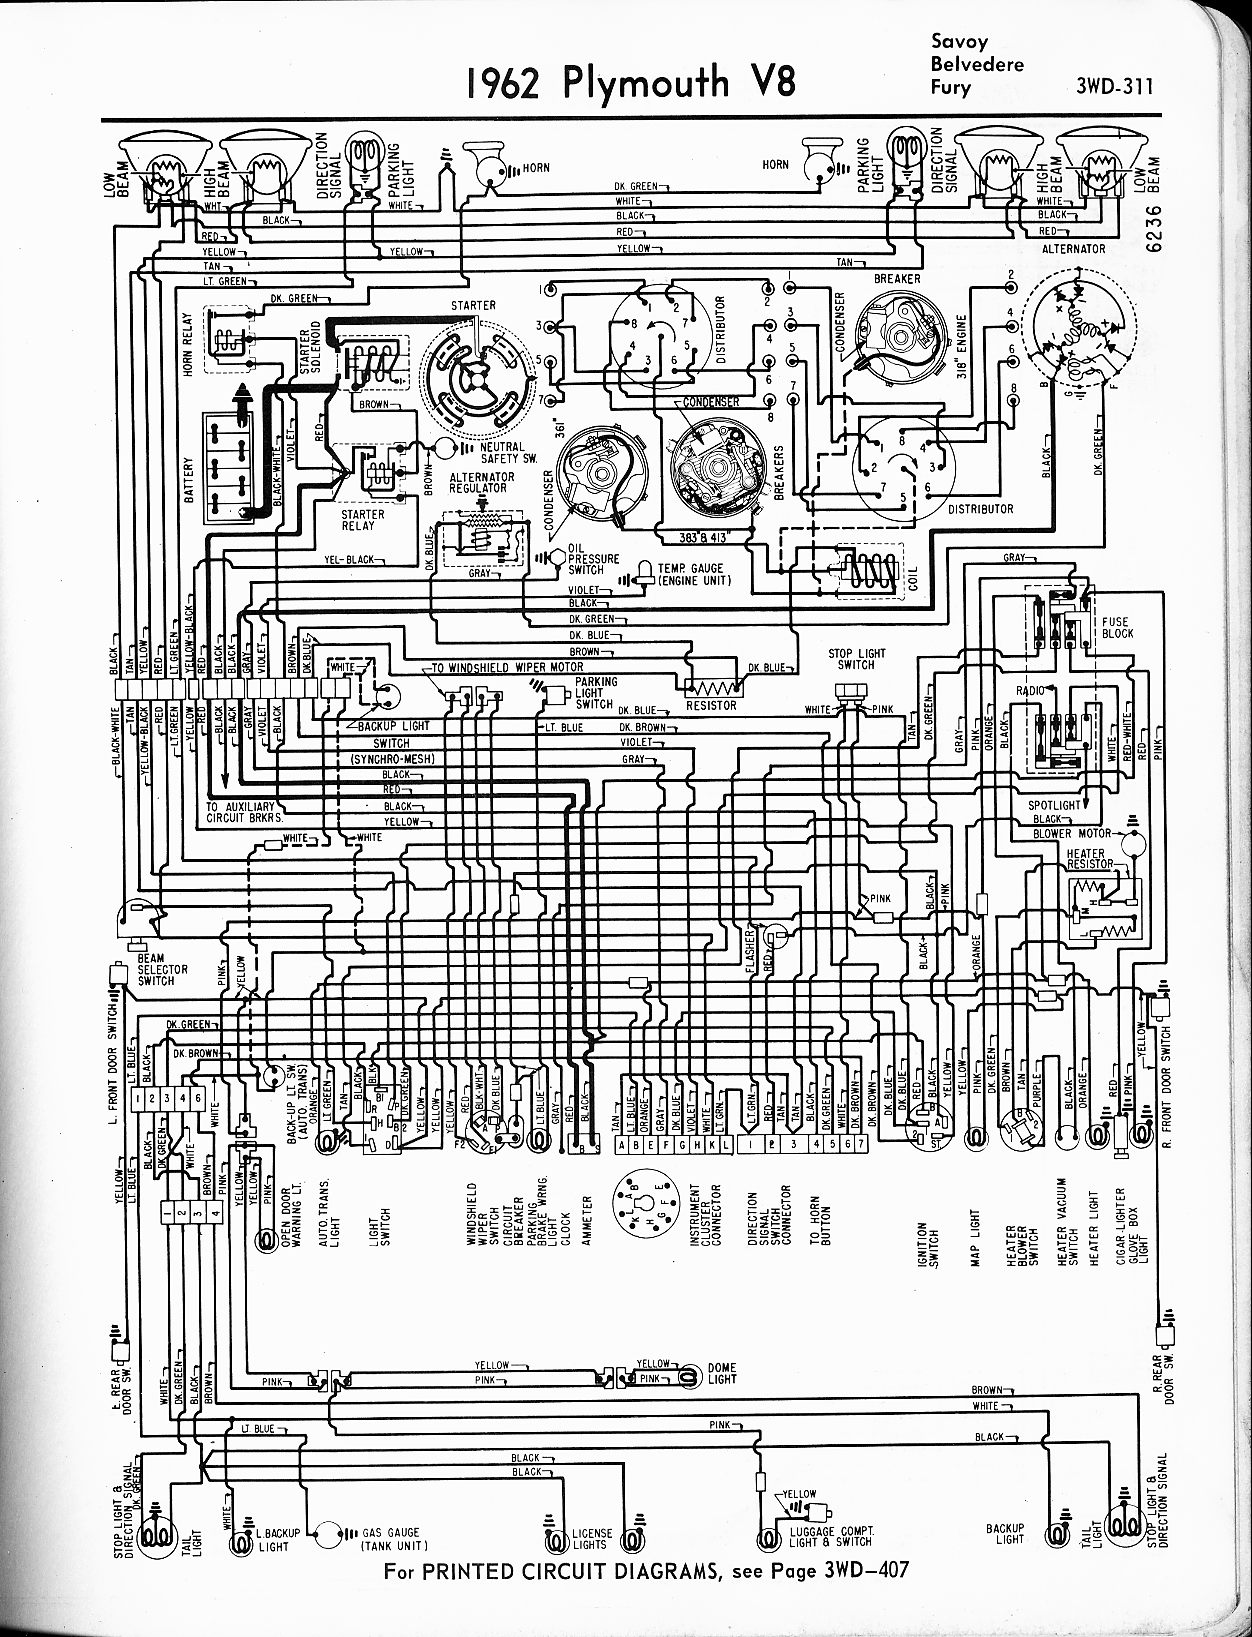 MWire5765 311 1956 1965 plymouth wiring the old car manual project 64 valiant wiring diagram at readyjetset.co